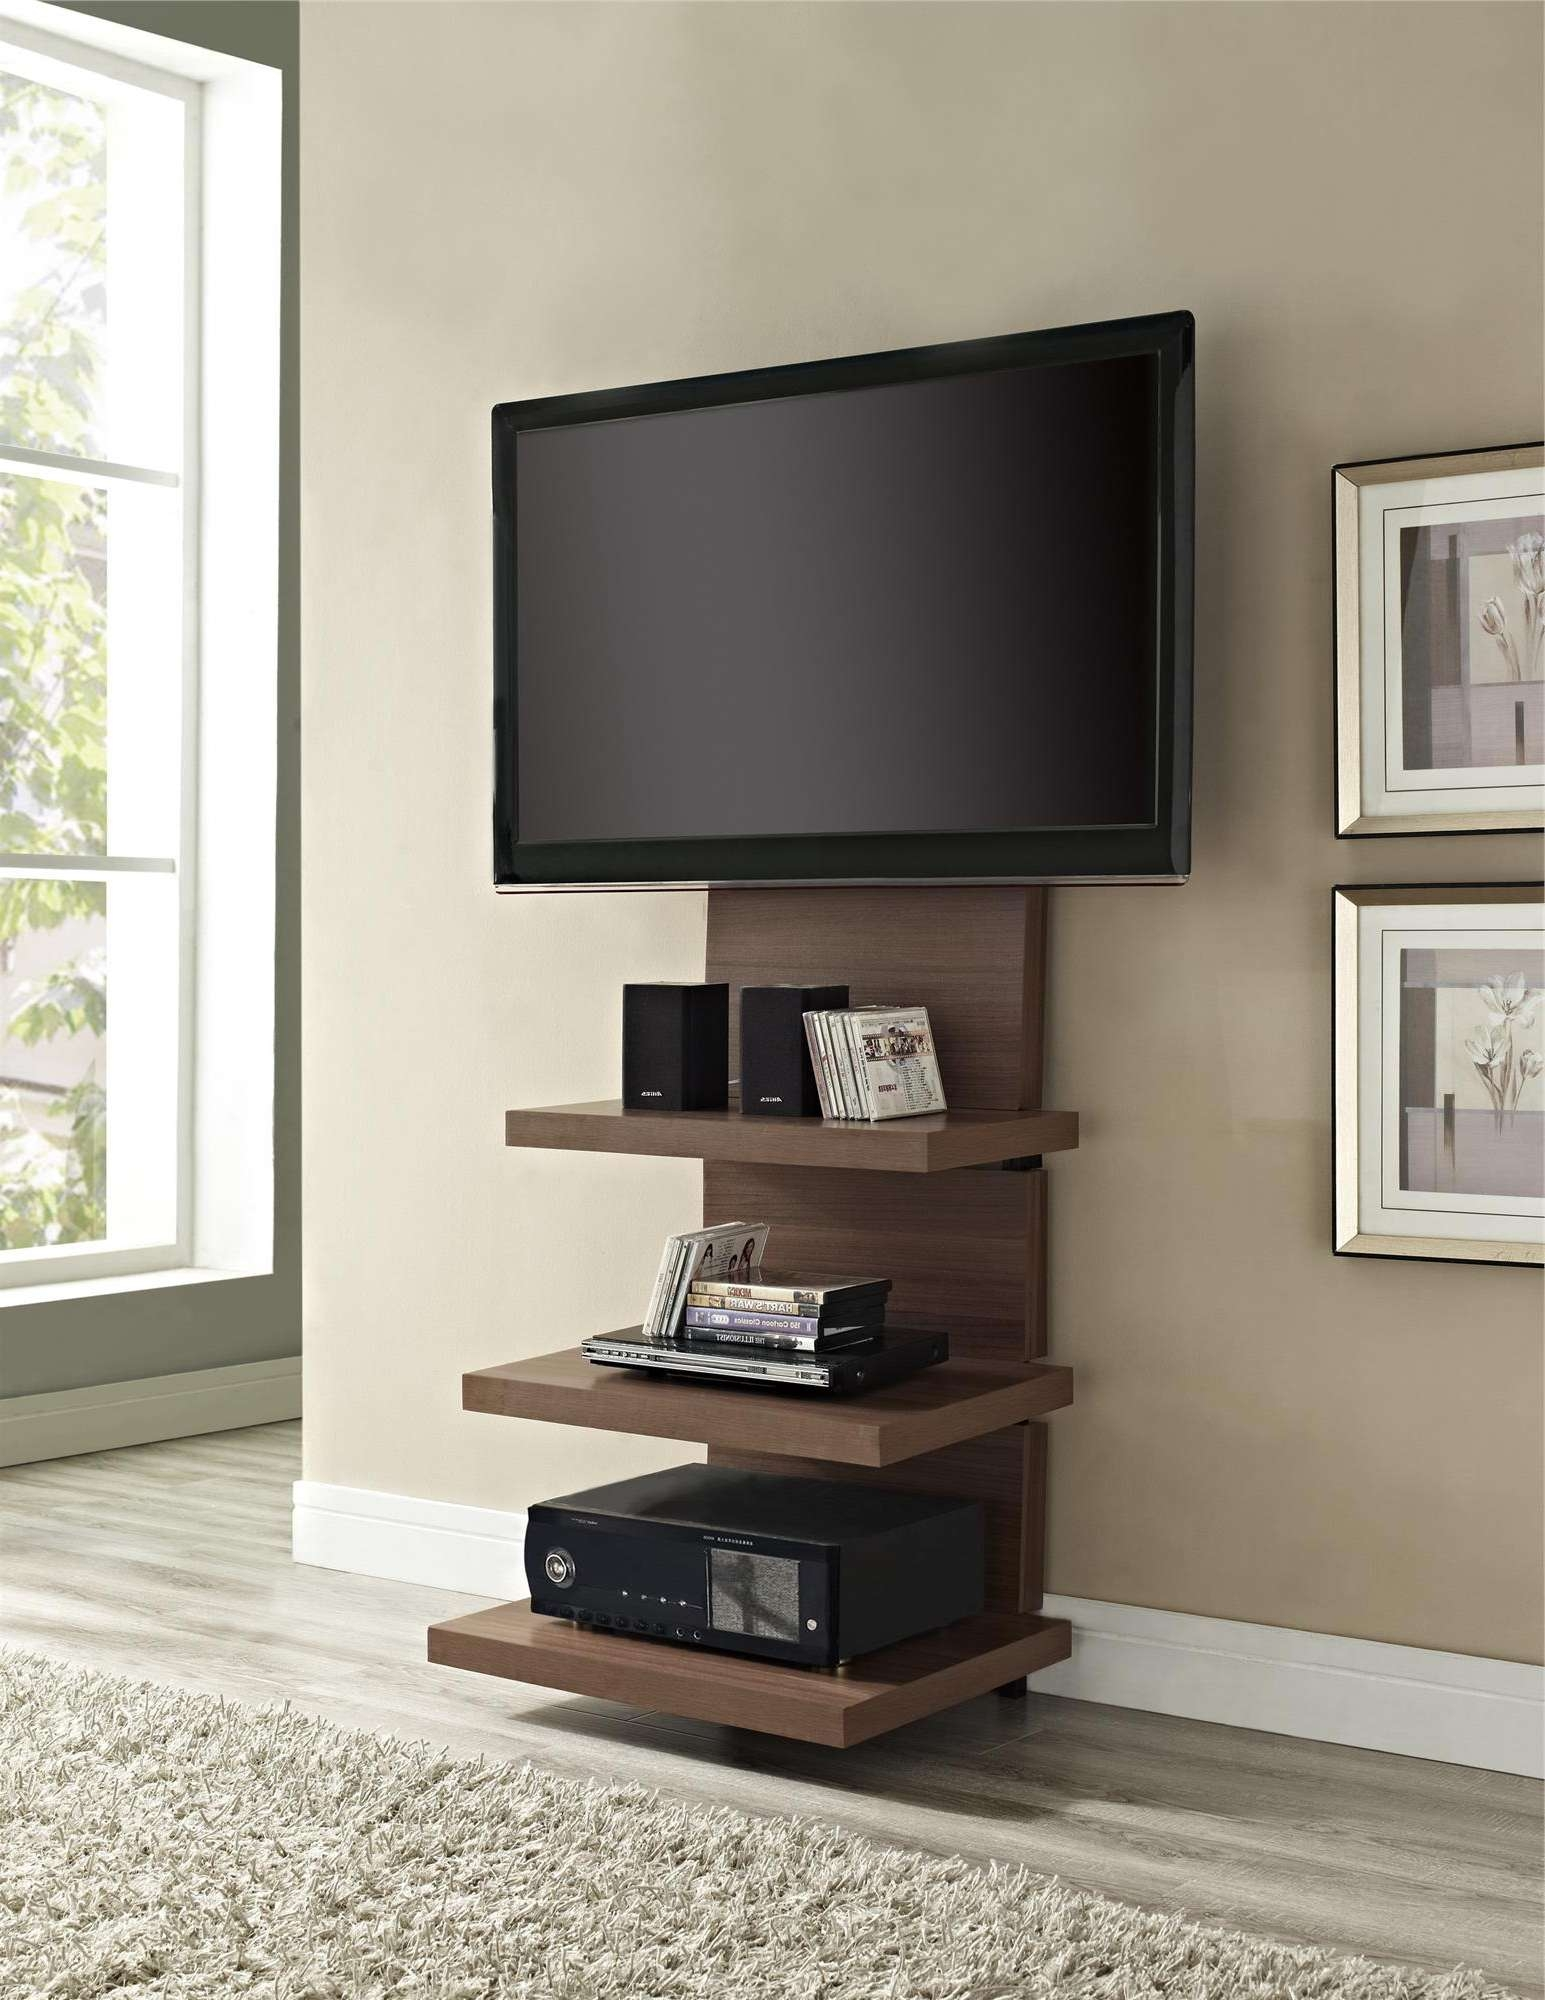 Tall Narrow Tv Stands For Bedroomsnarrow And Tall Tv Stand With With Regard To Tv Stands Tall Narrow (View 4 of 15)